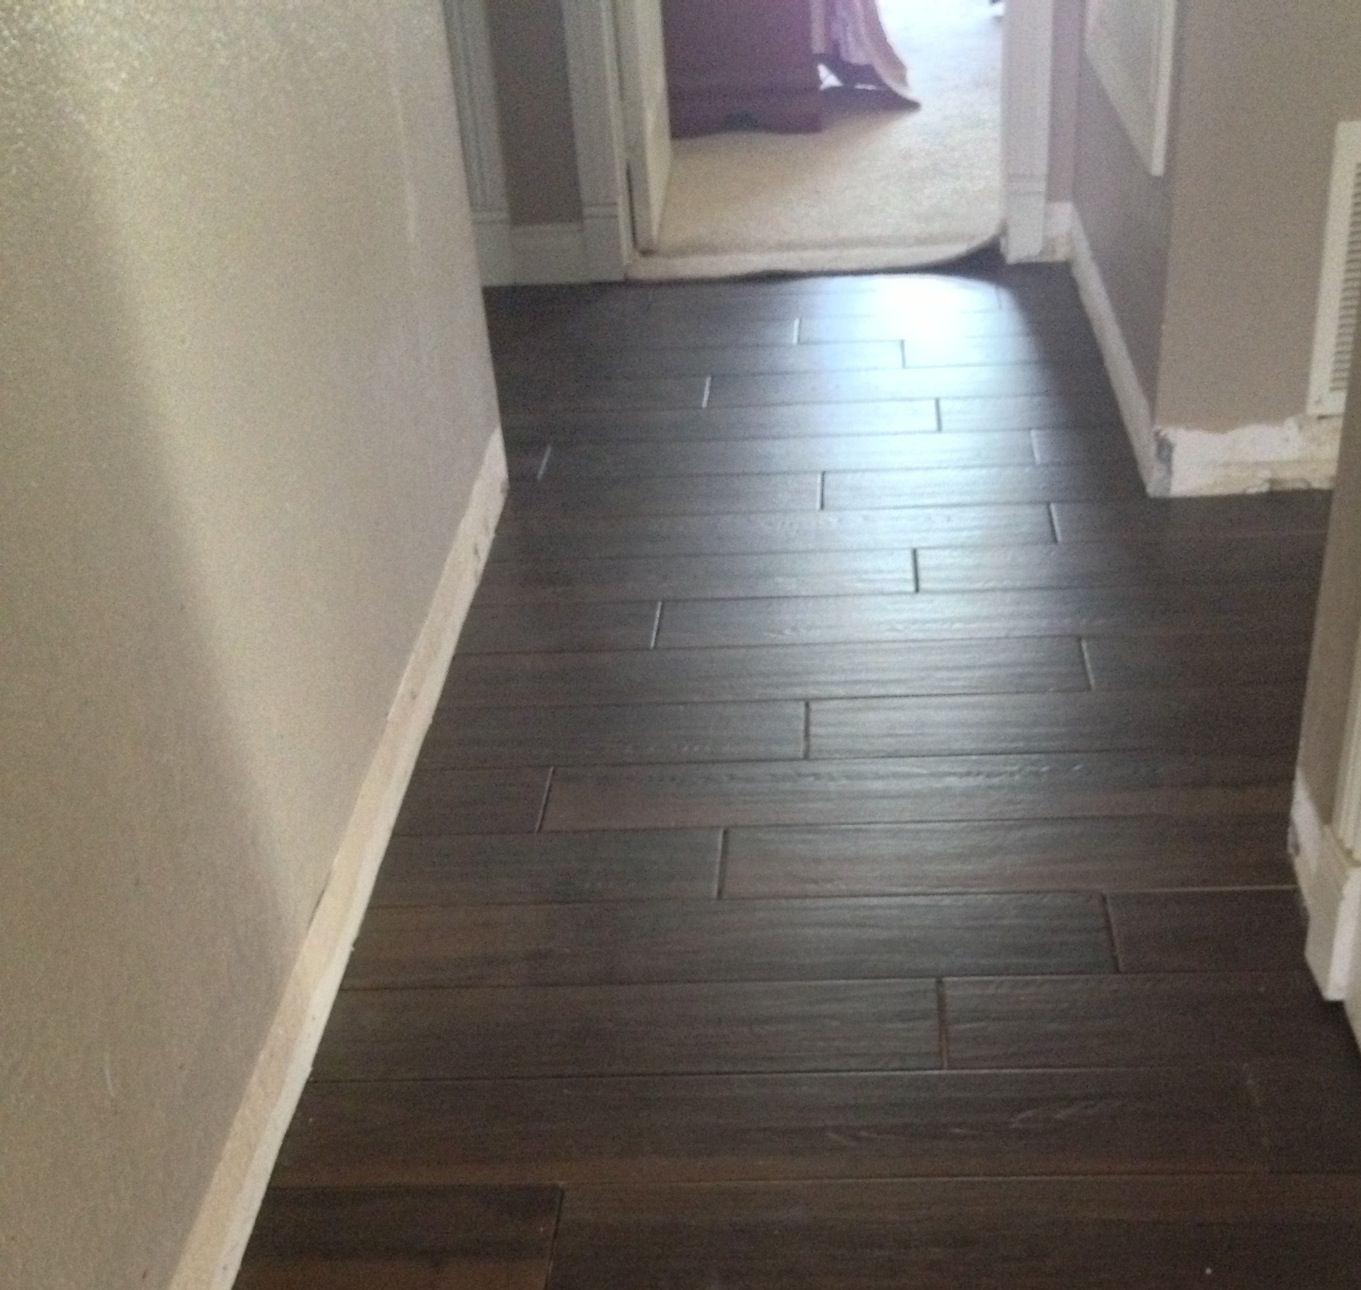 Kitchen And Hallway Flooring: In Process Wood Plank Tile In Hallway @$5.35 Sq Ft